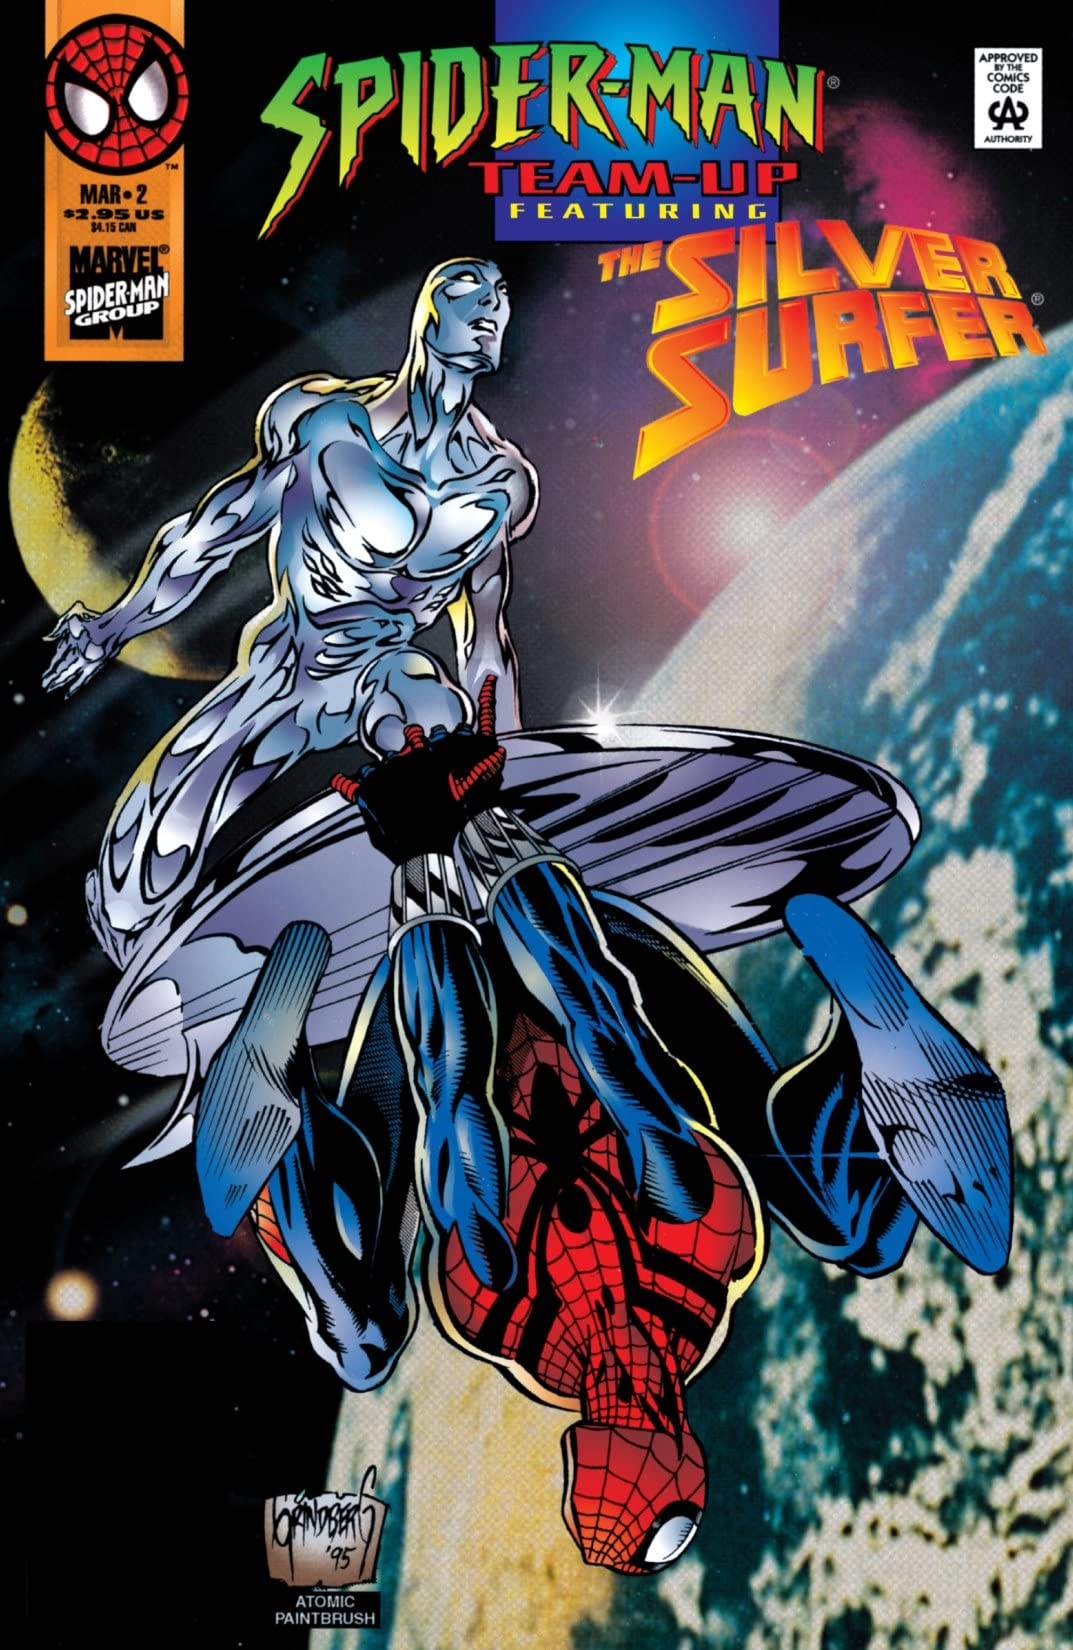 Spider-Man Team-Up (1995-1997) #2